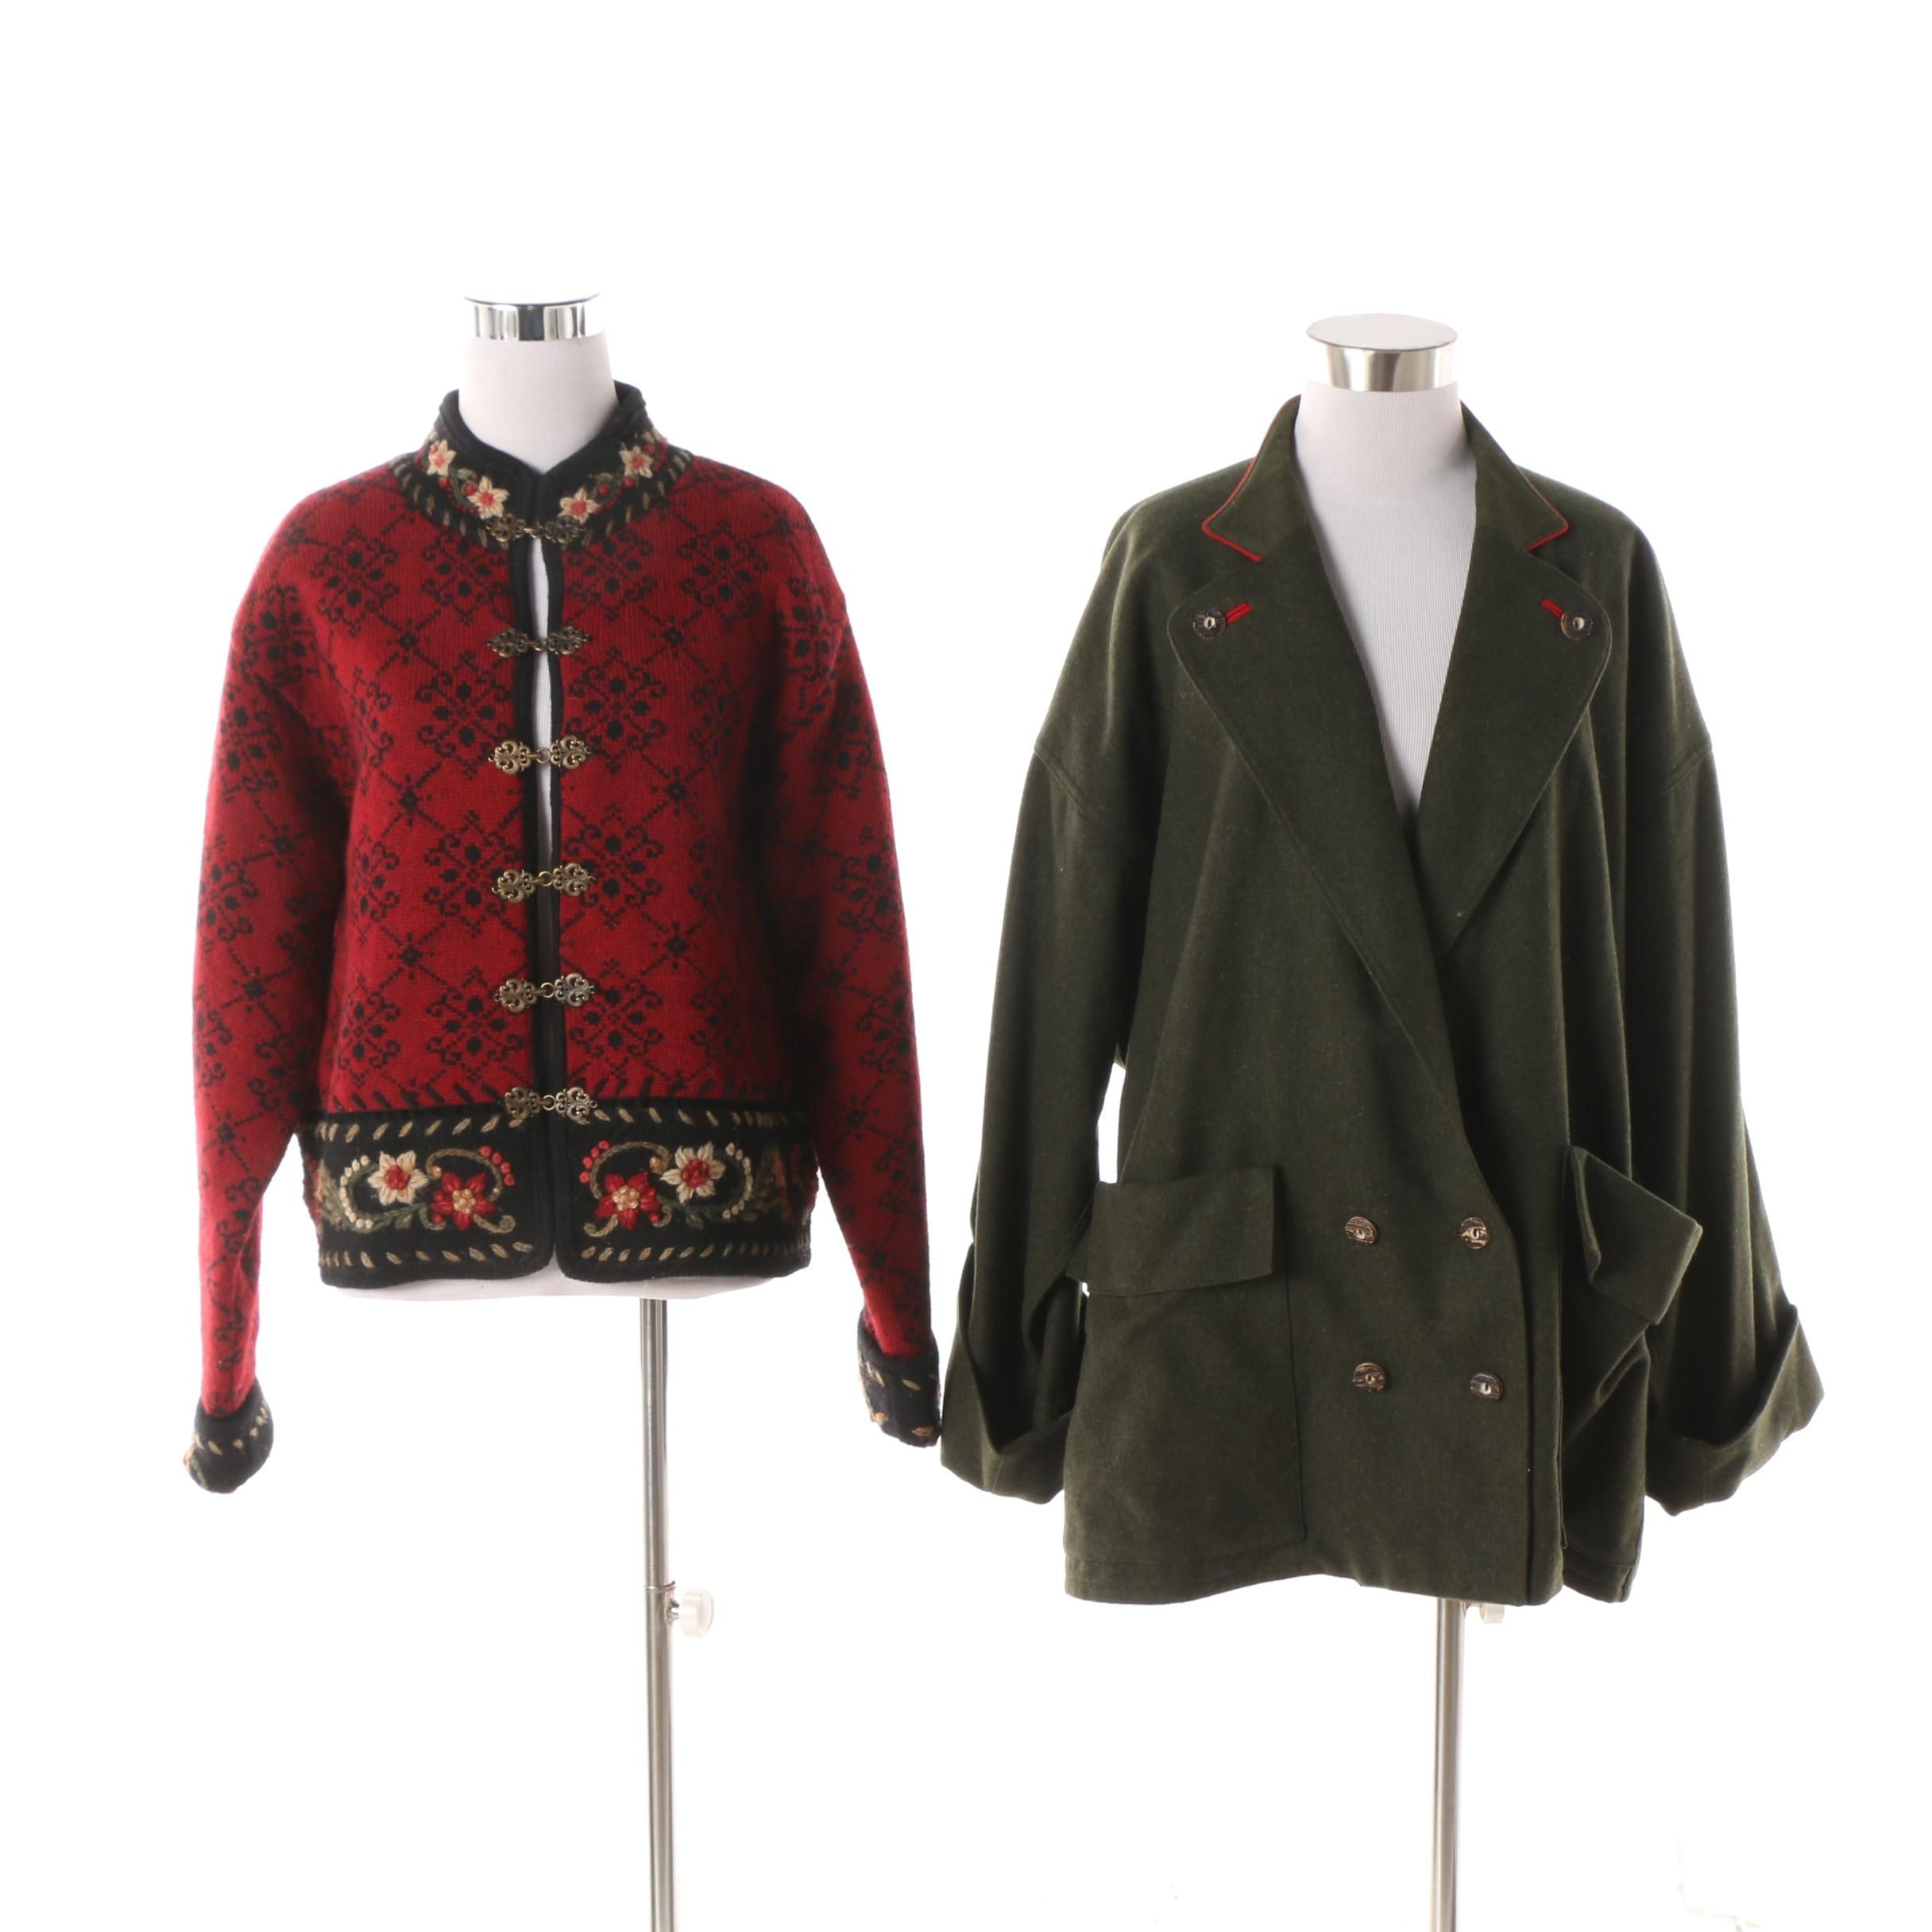 Women's Wallach Double-Breasted Wool Jacket and Icelandic Design Wool Cardigan